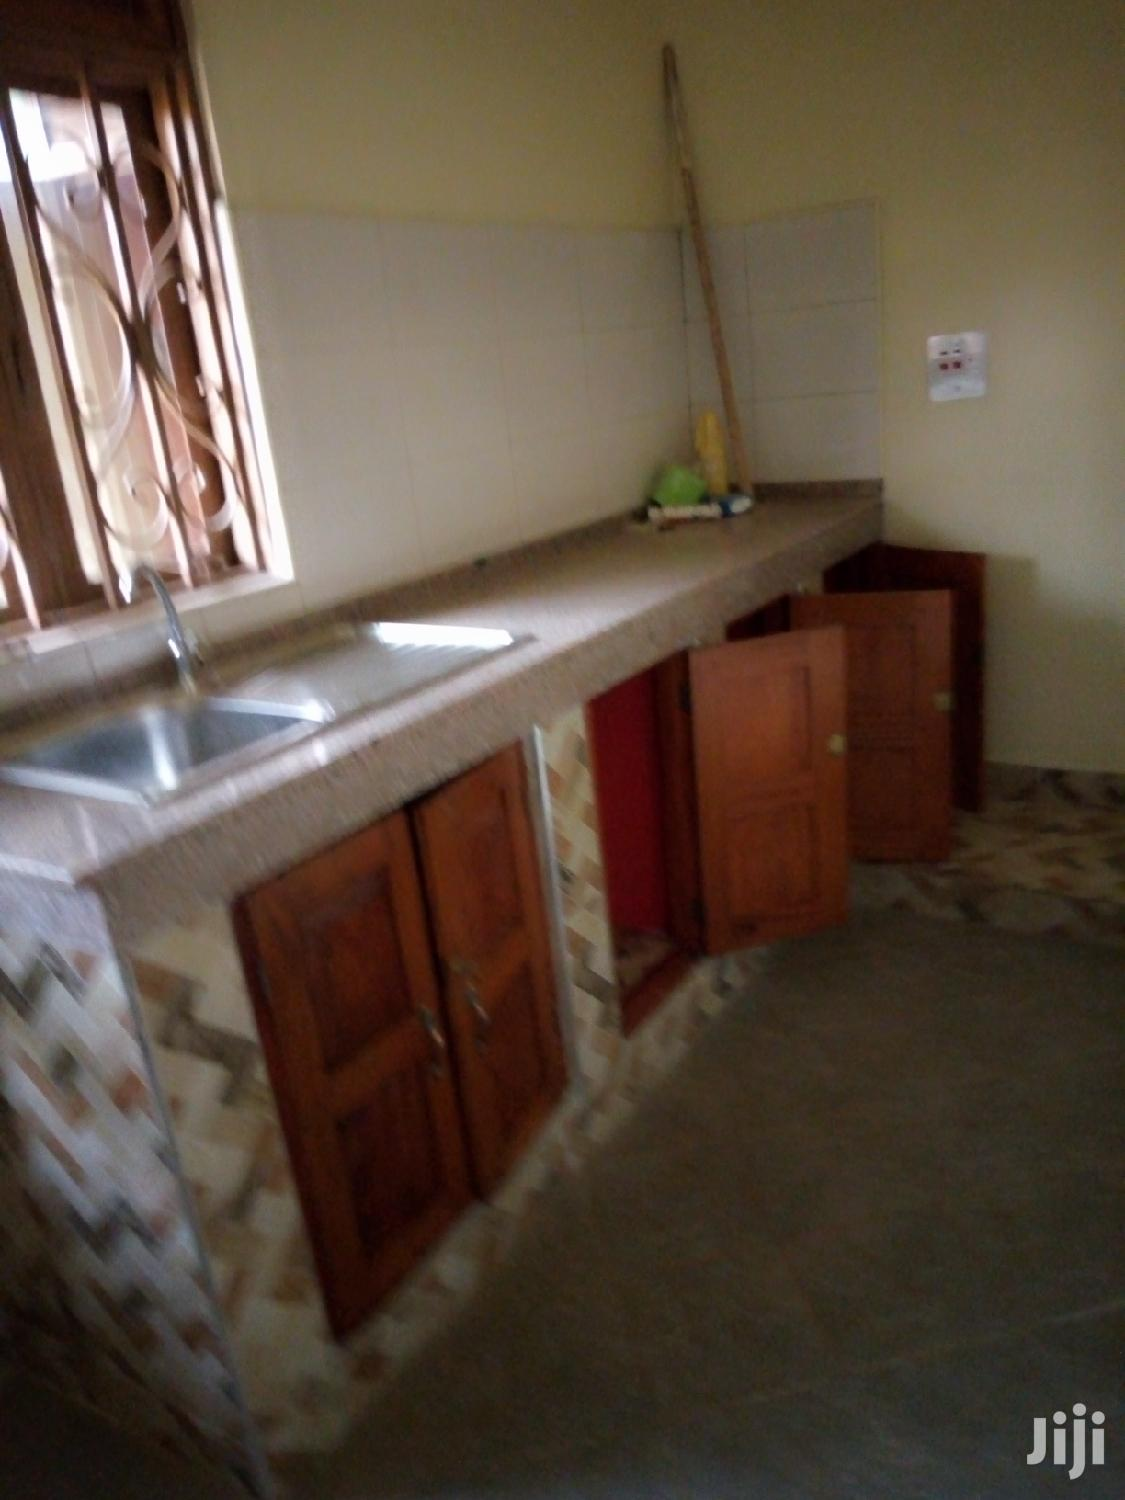 Archive: Nice 2 Bedroom House For Rent In Namugongo